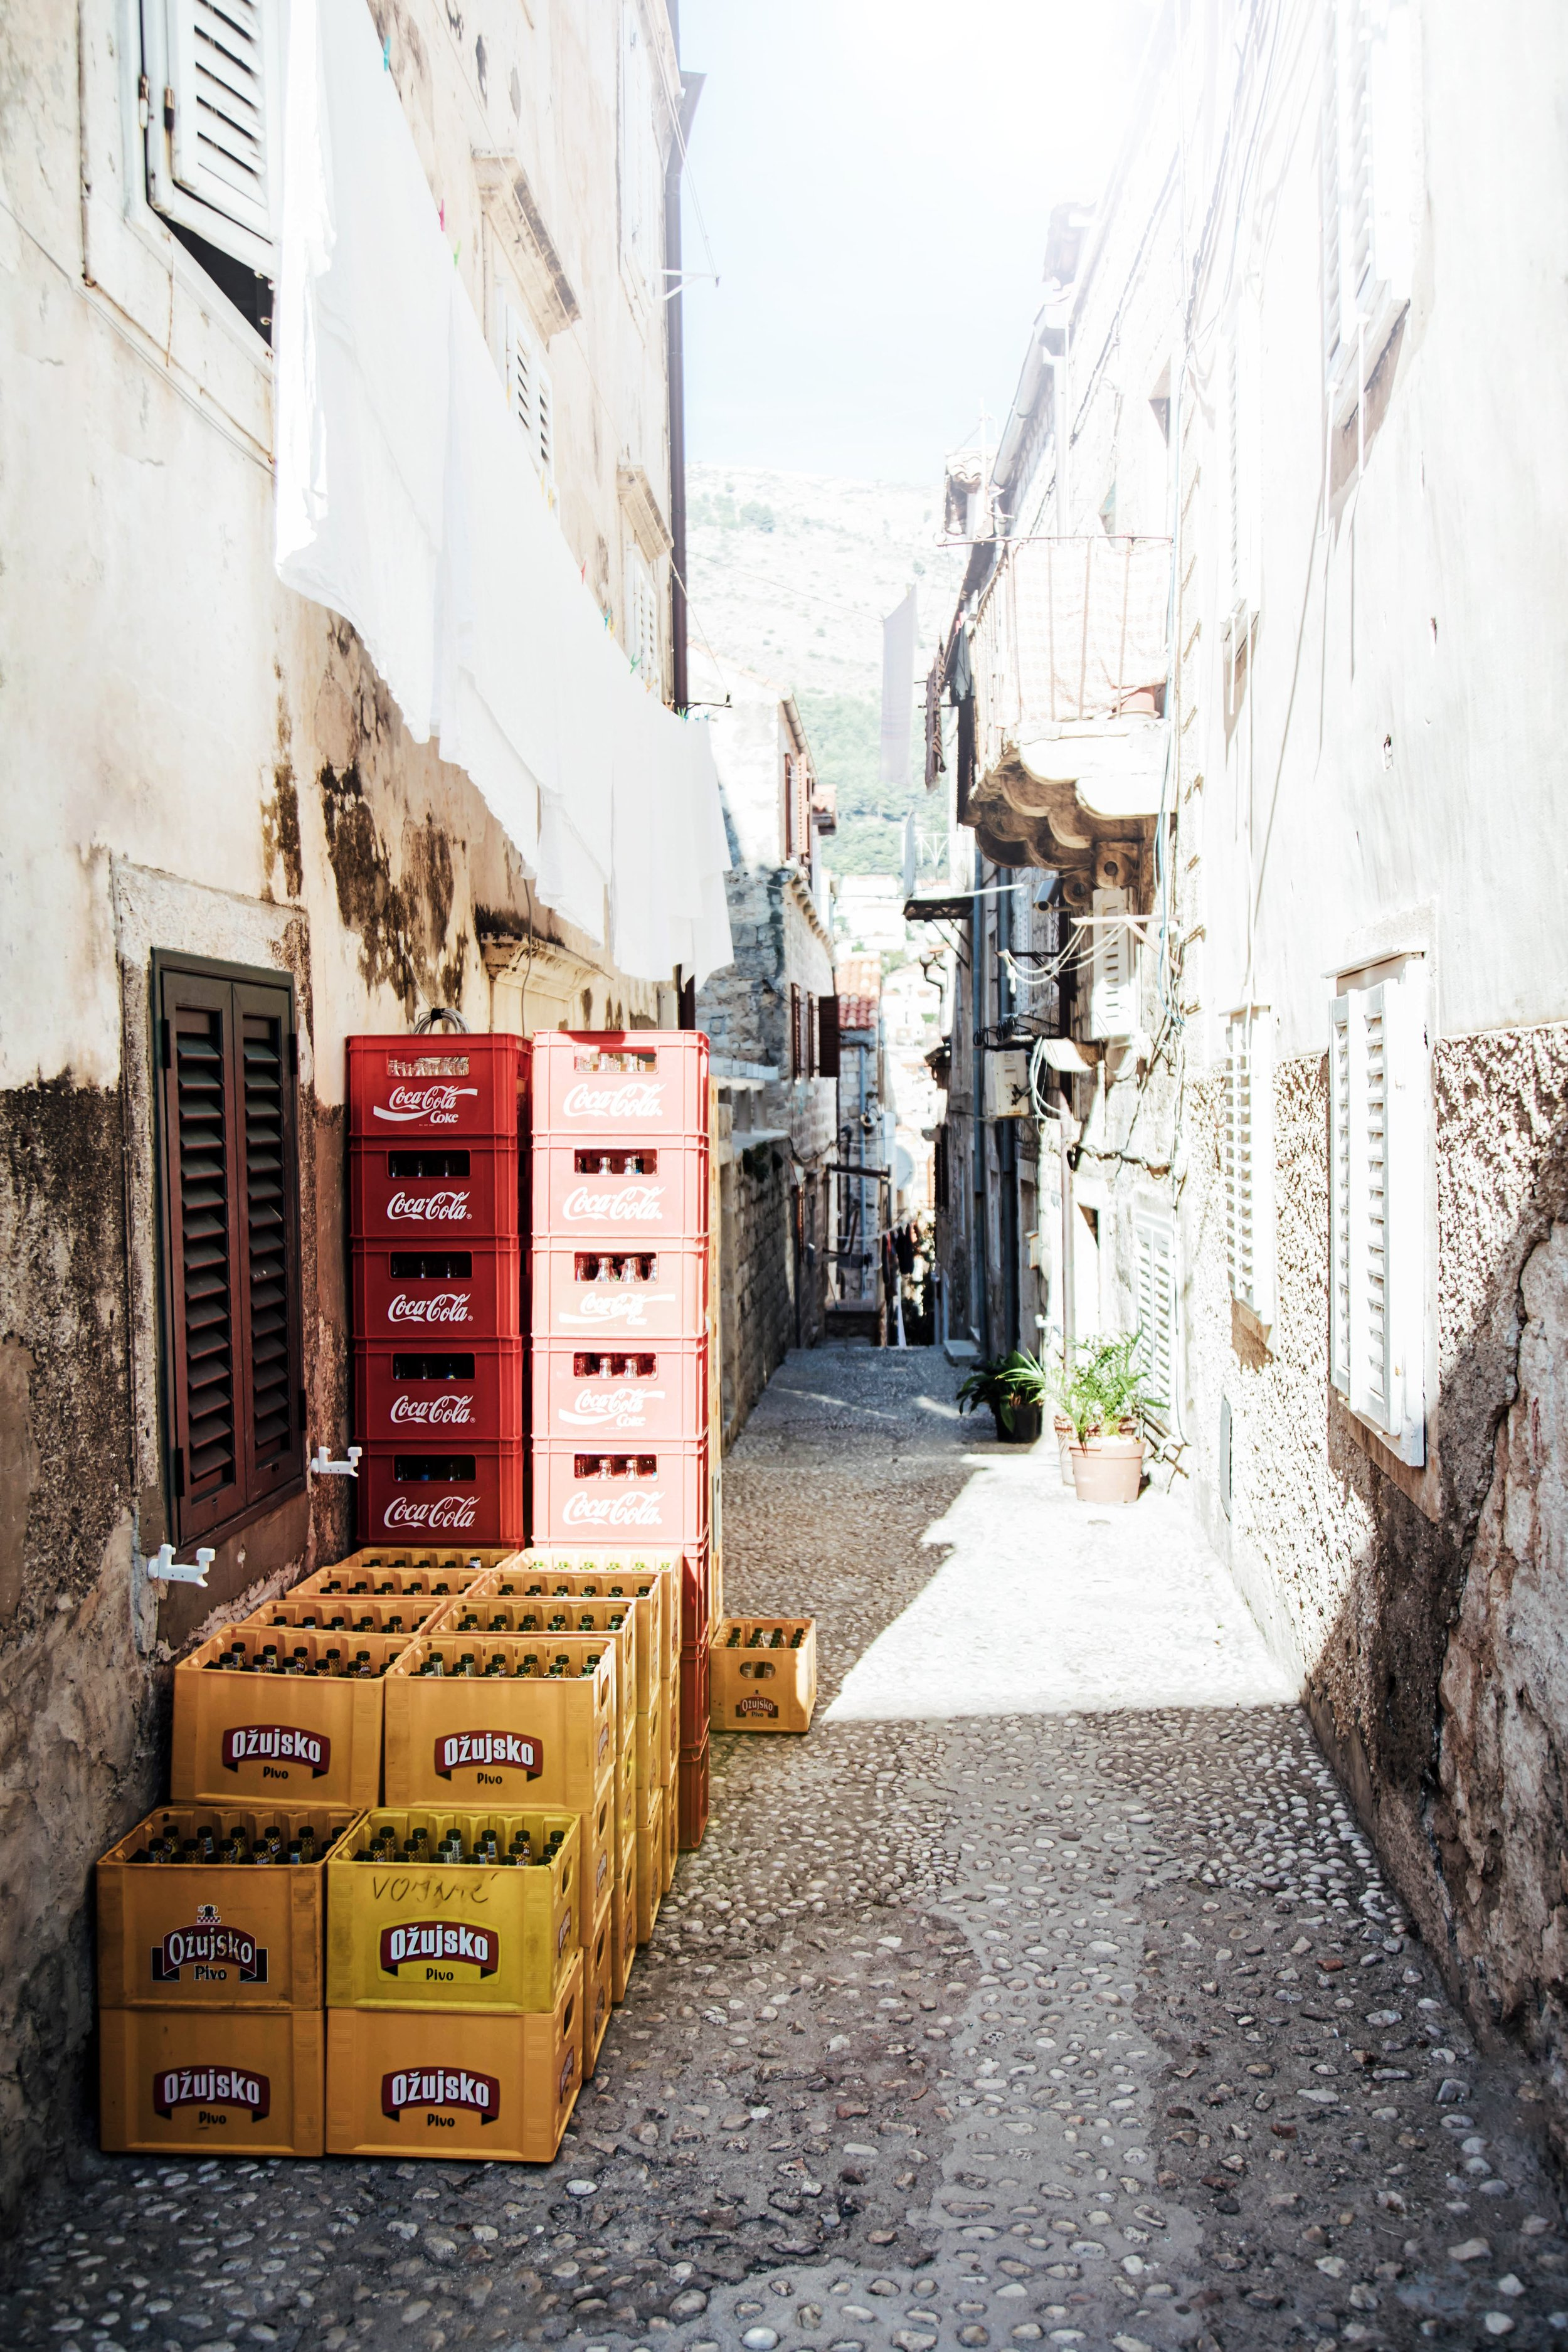 Travel_Photography_1_Dubrovnik-Croatia (22)-min.jpg